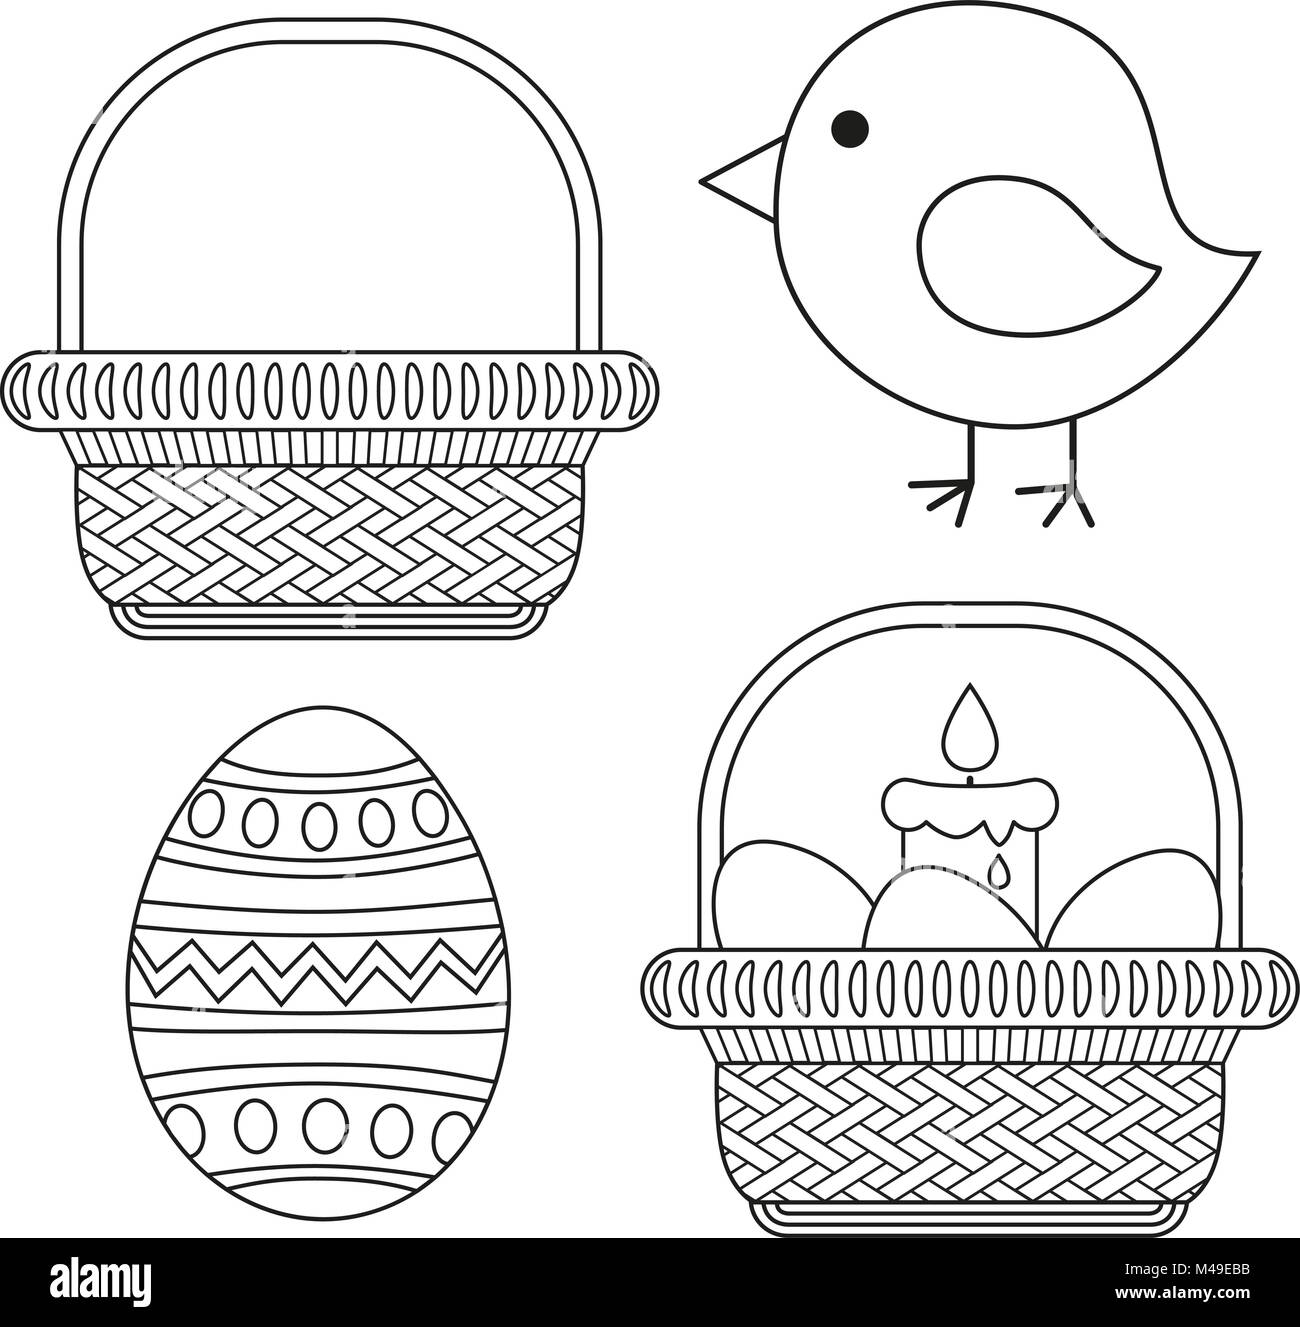 Easter Chick Coloring Page Stock Photos & Easter Chick Coloring Page ...